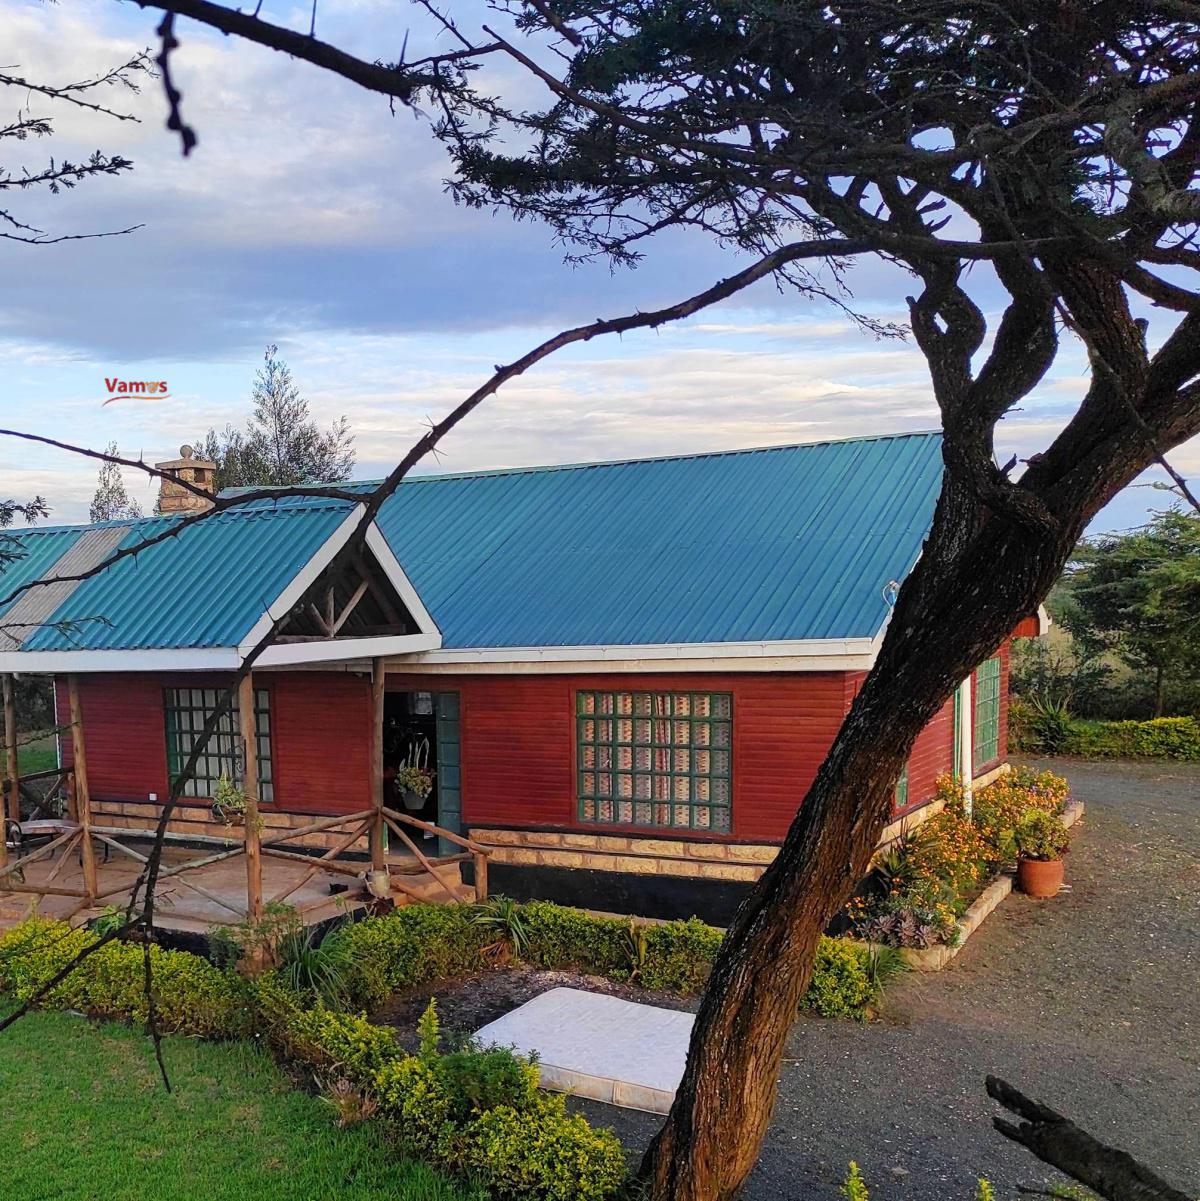 Stay in this charming cottage in Ngong Hills from 2799 Per Person!